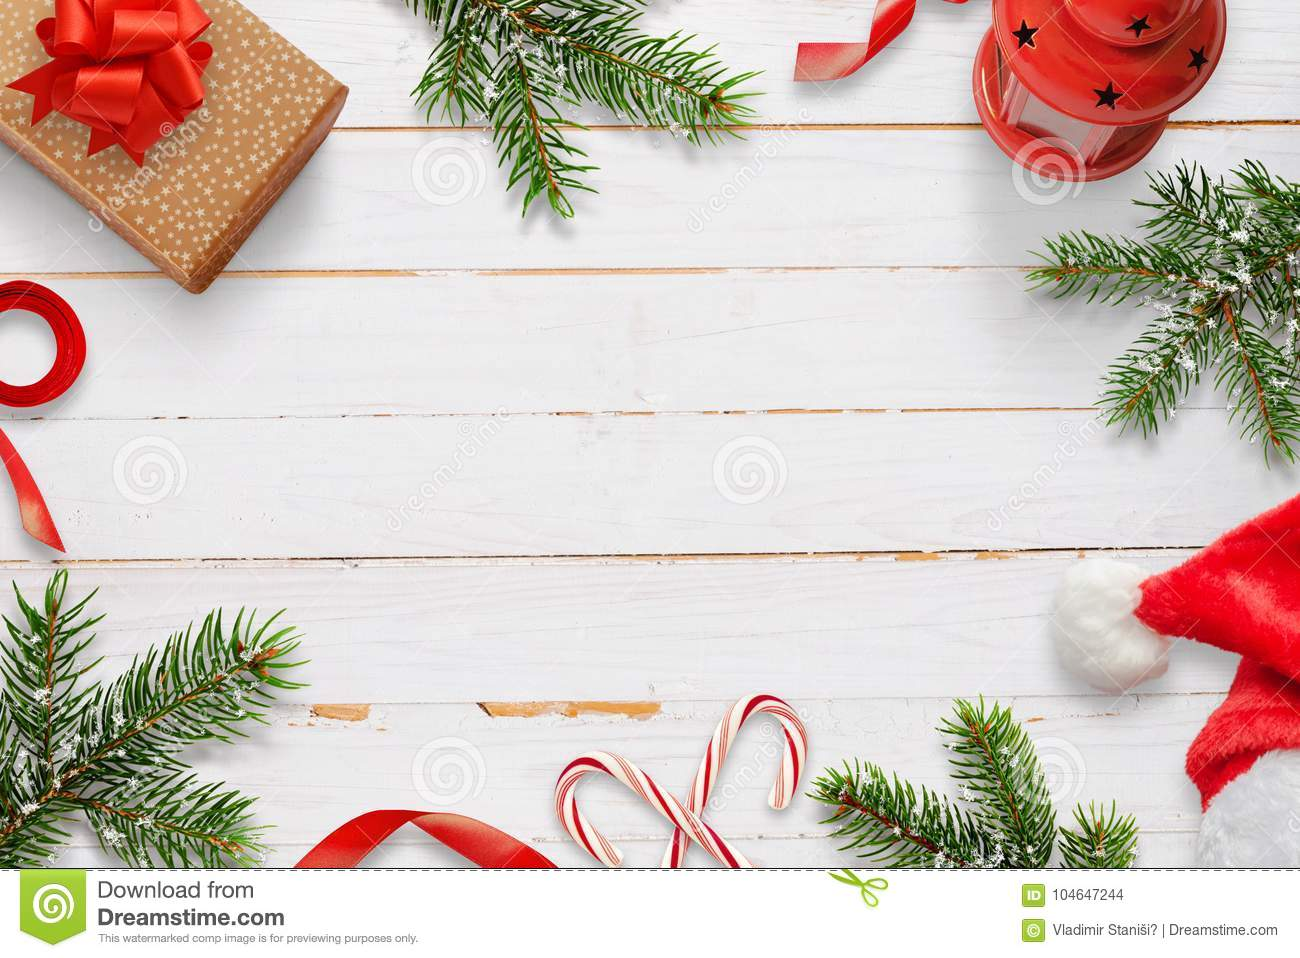 Christmas Decorations On White Wooden Table Free Space In The